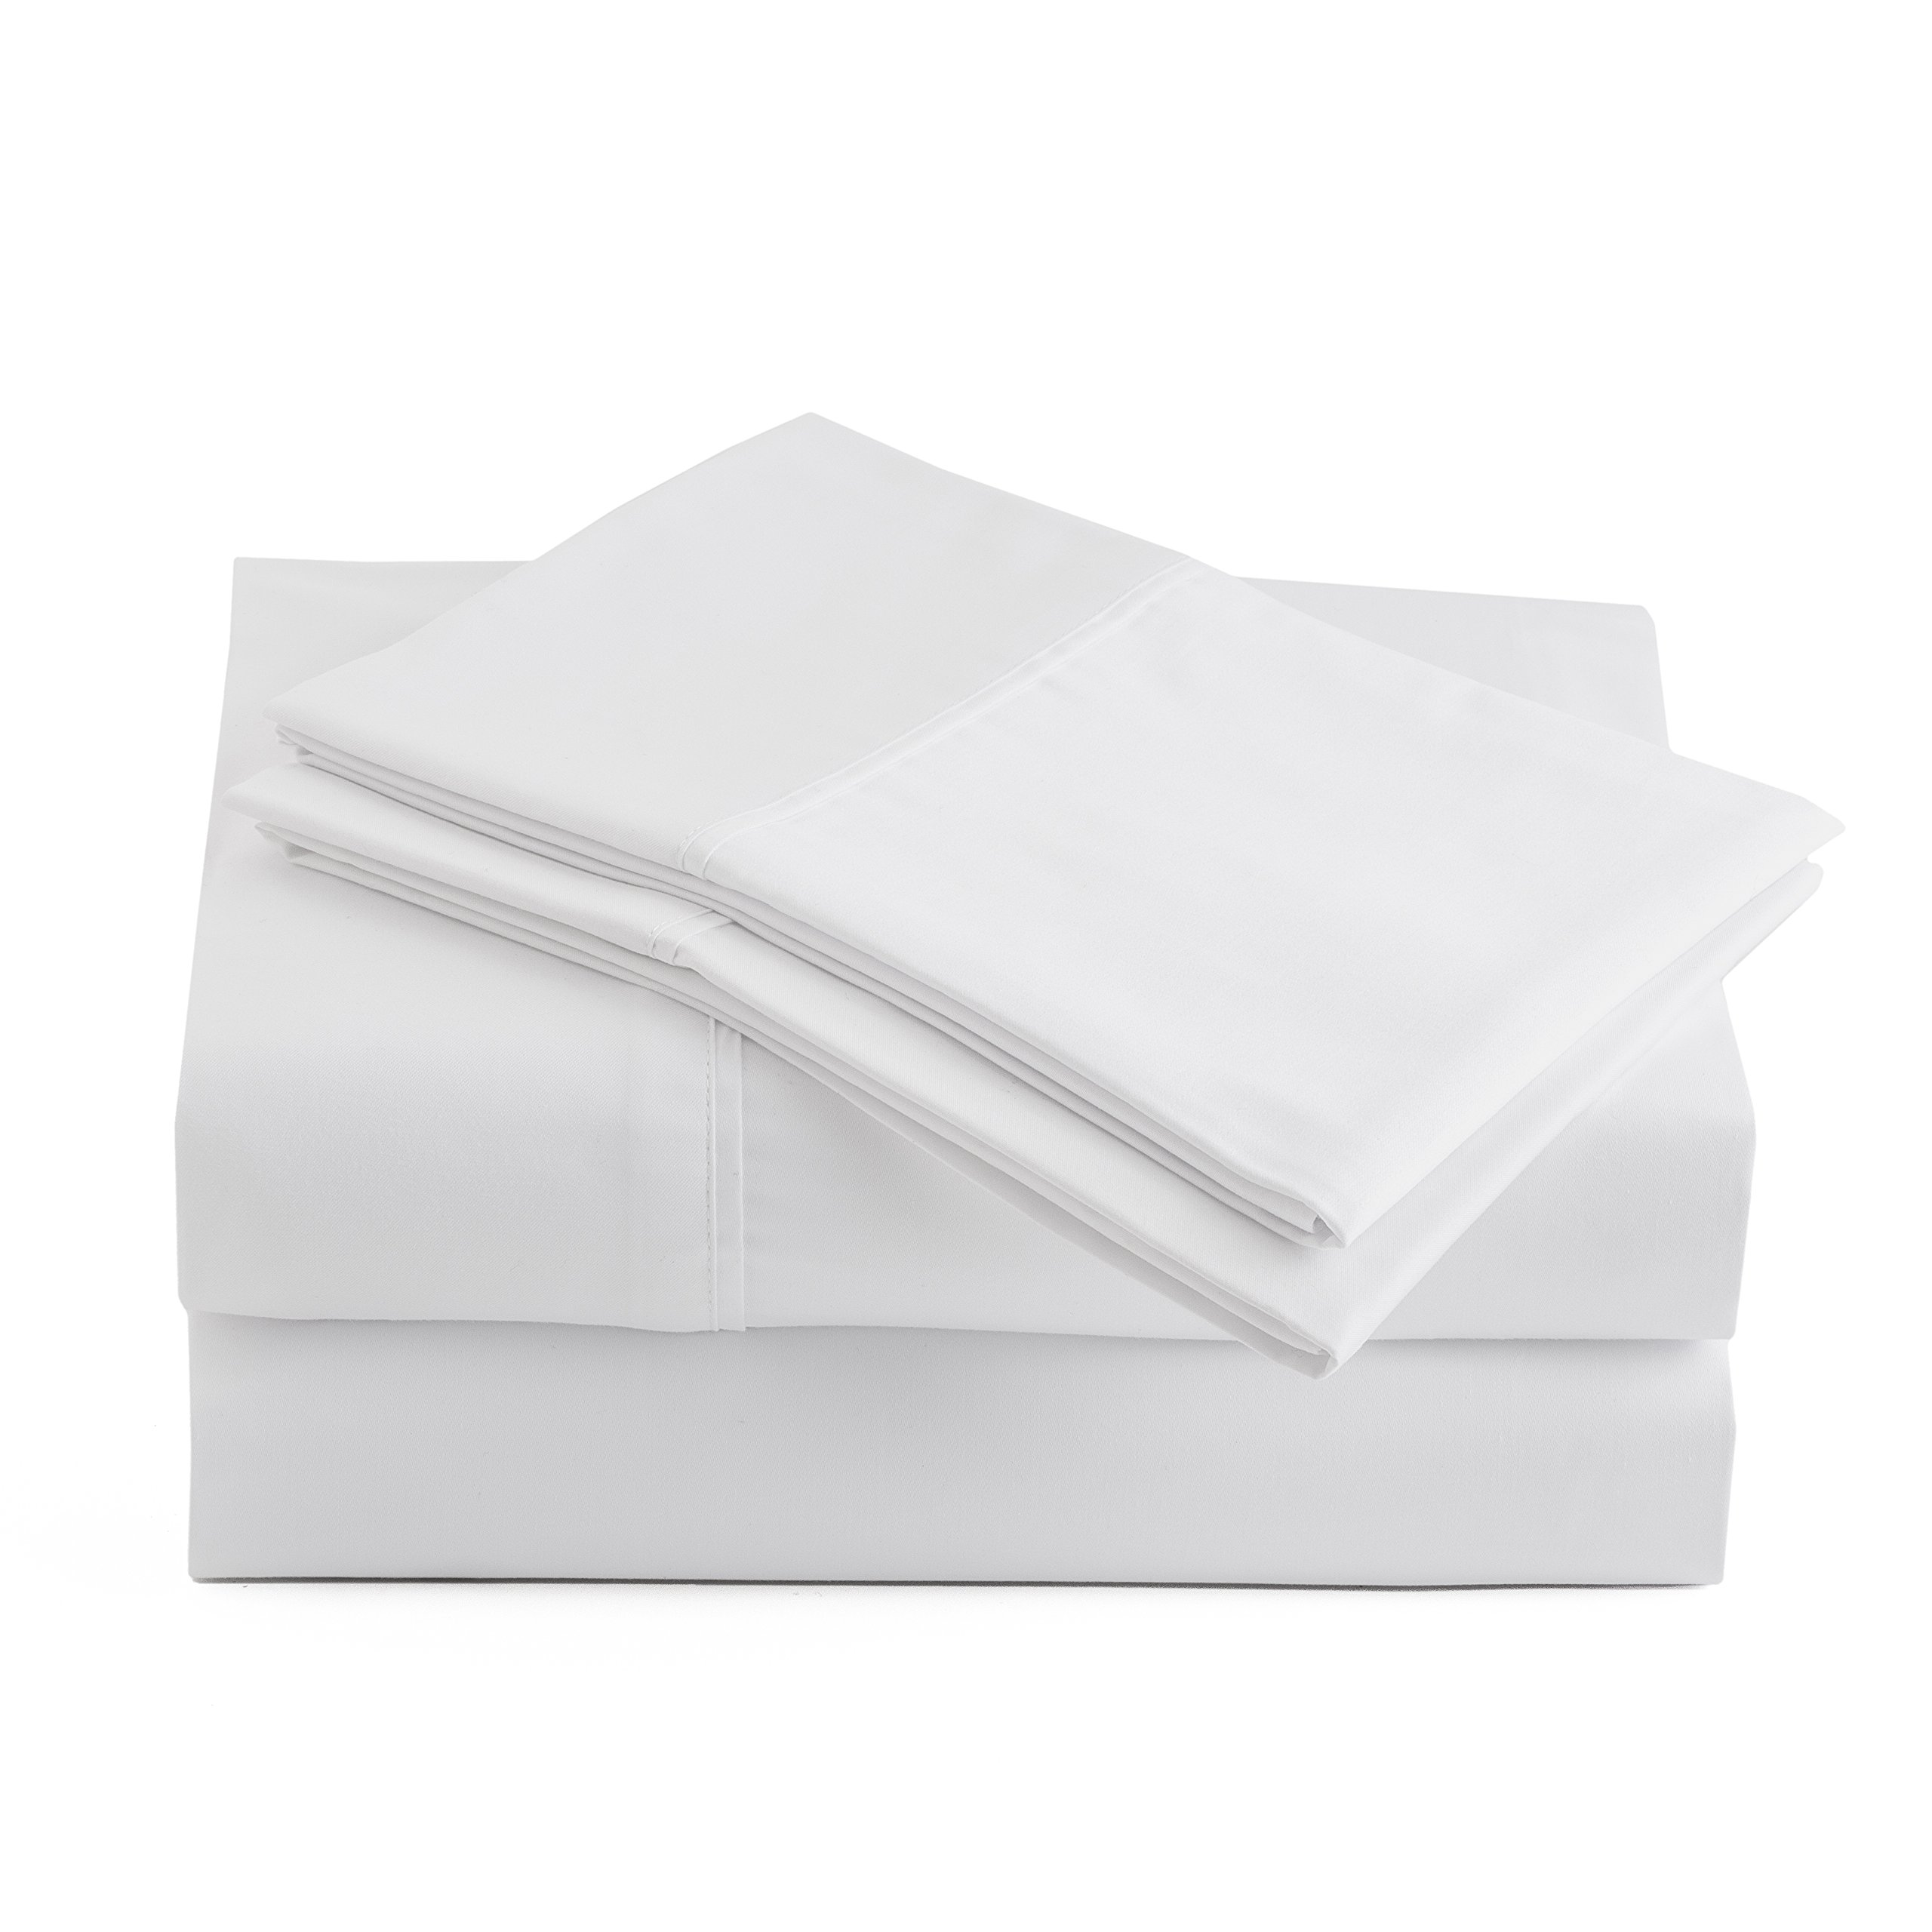 Peru Pima - Temperature Regulating Sheets - 600 Thread Count - 100% Peruvian Pima Cotton - Sateen - Bed Sheet Set - King, White